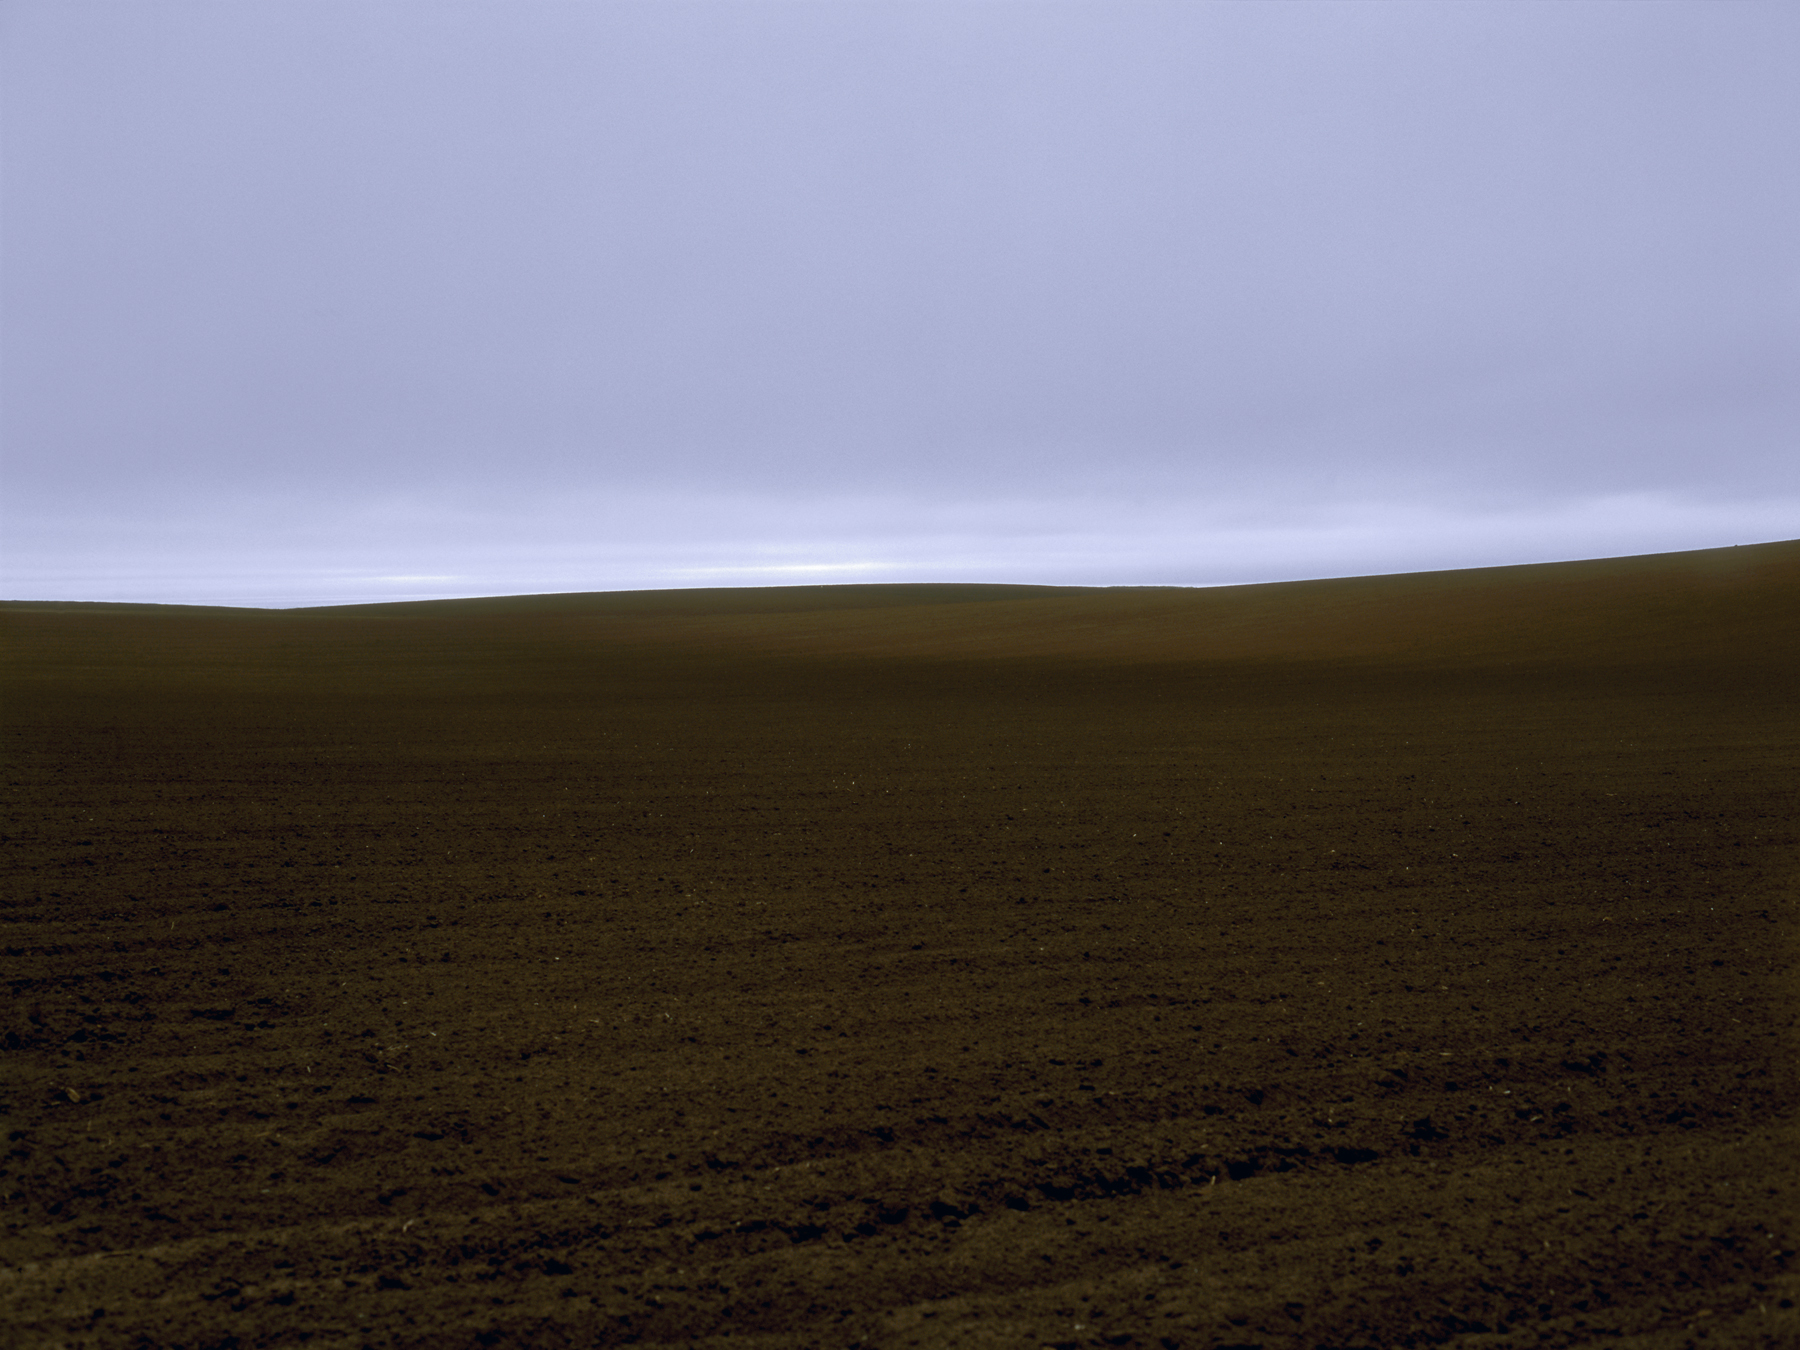 James_Cooper_Agricultural Fields_Field 3_4.jpg